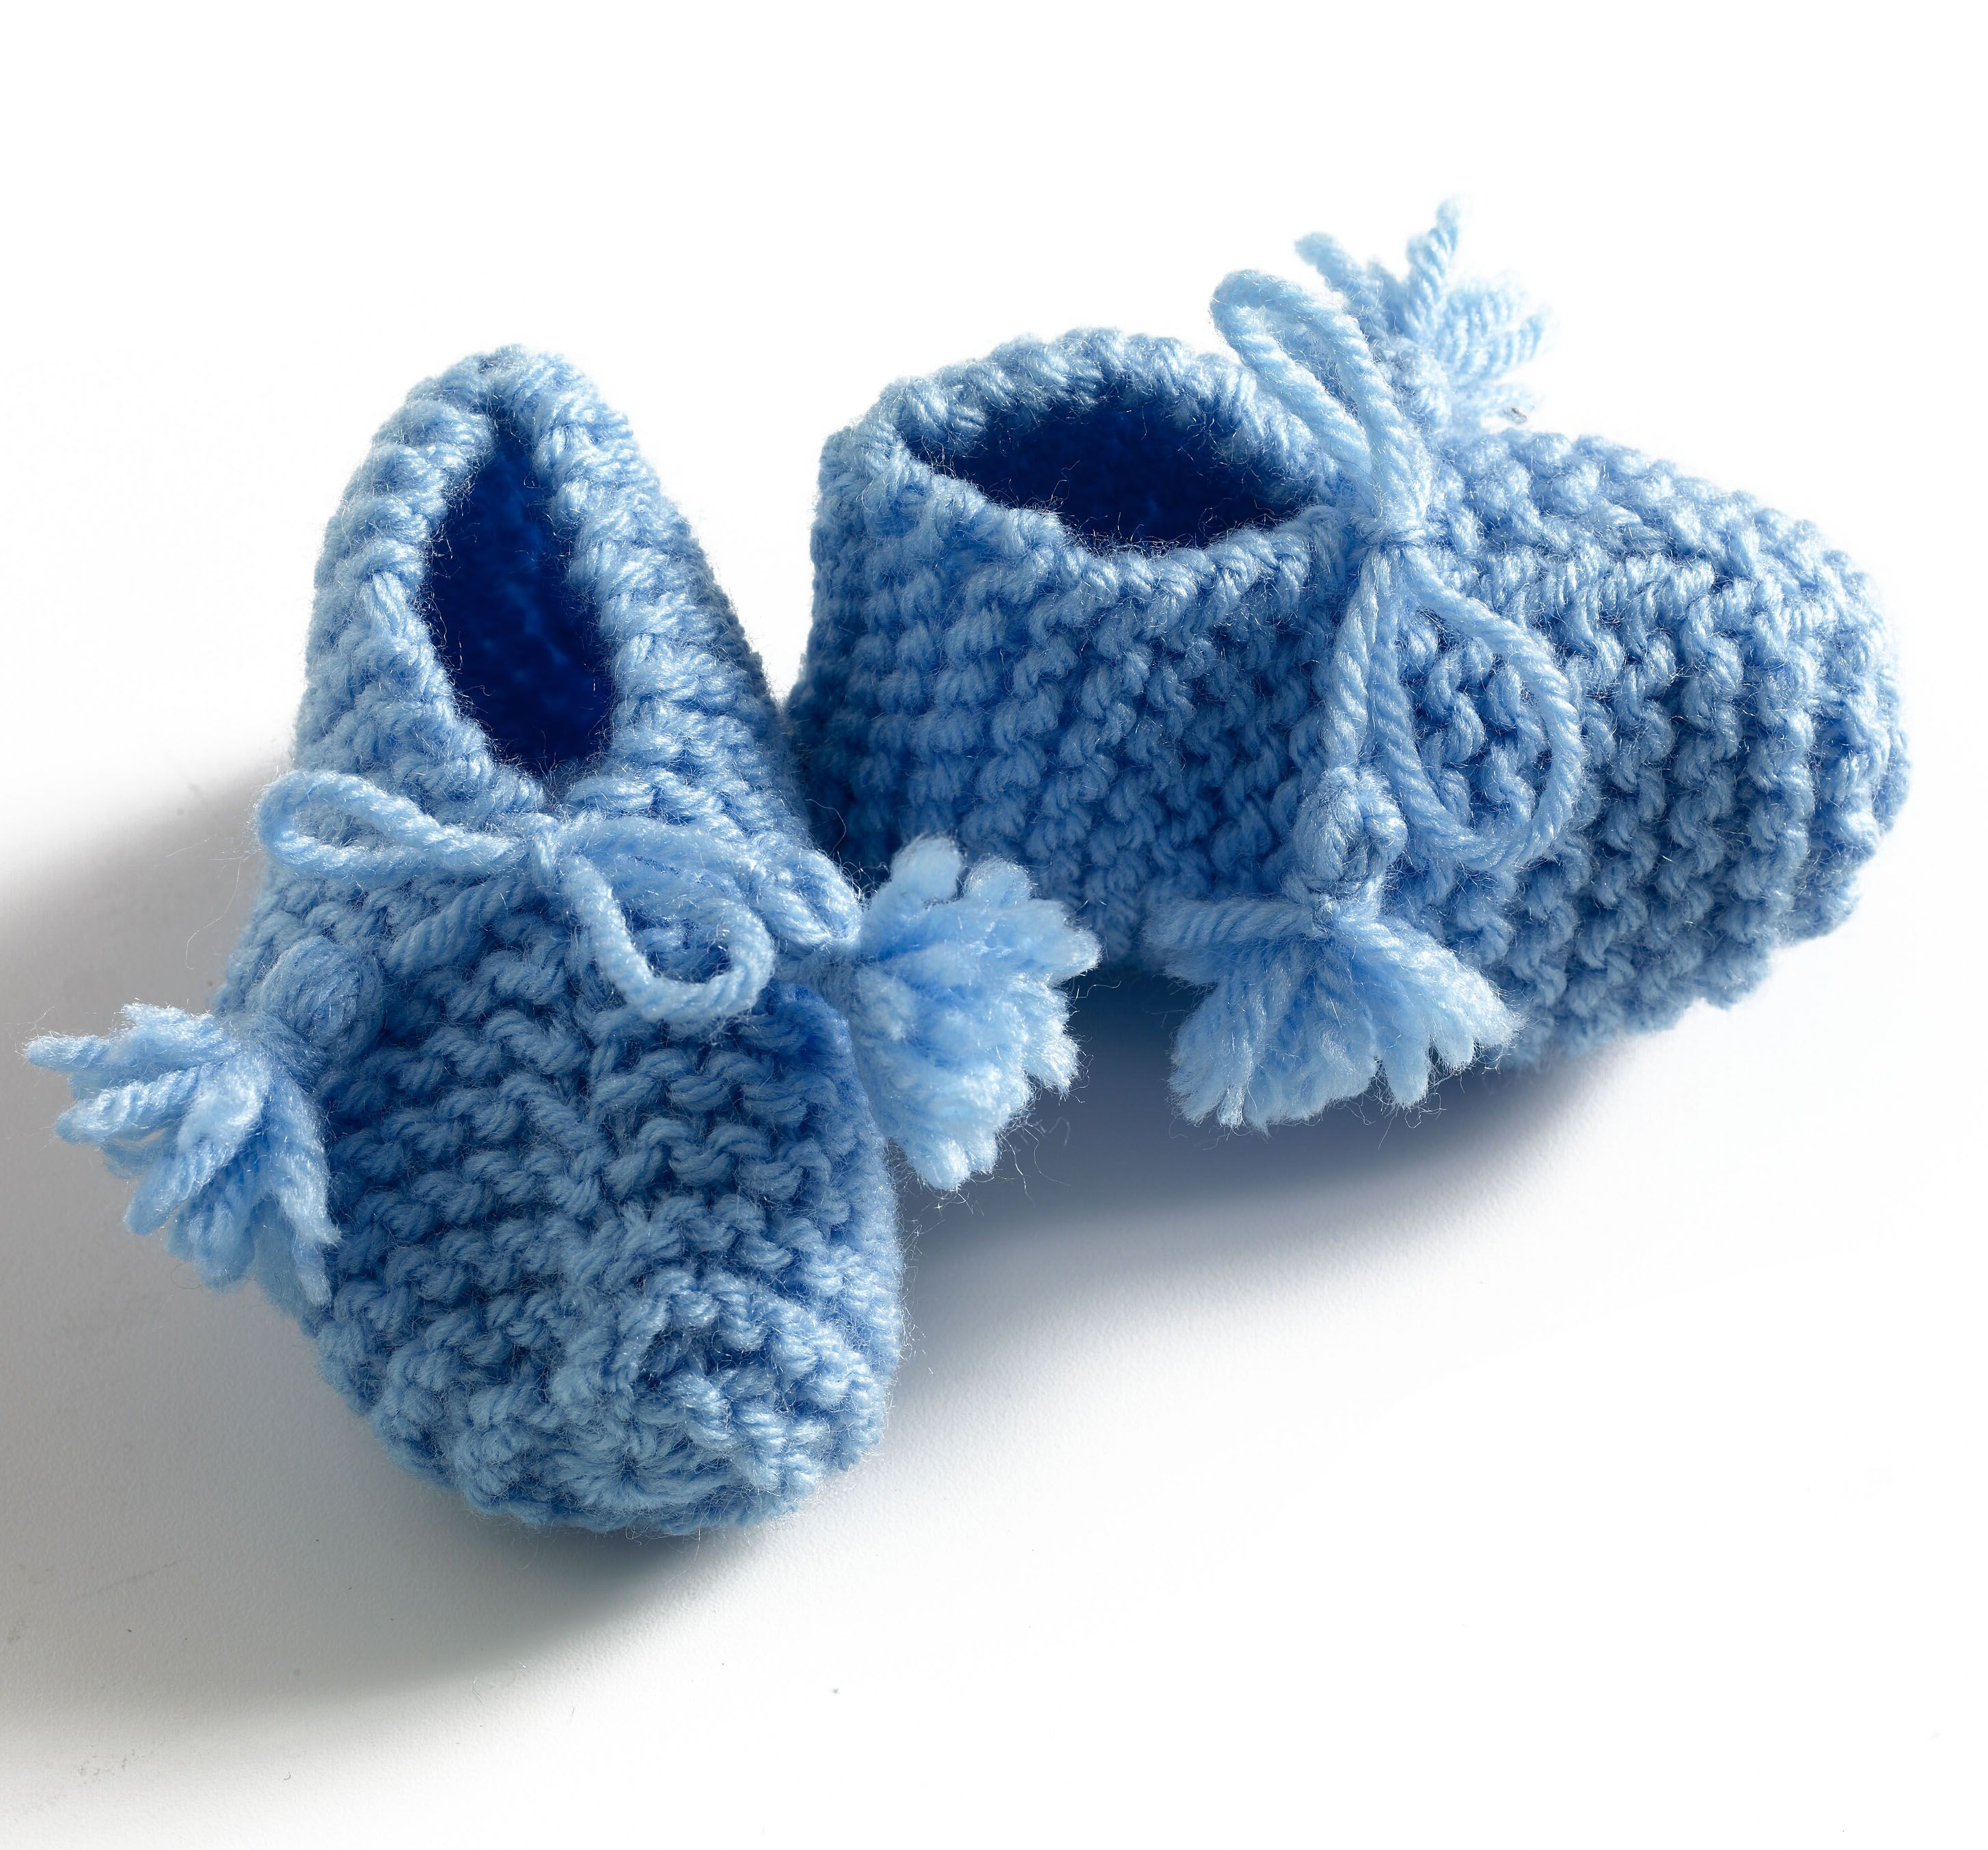 Free knitting patterns two needle baby booties for beginners free knitting patterns two needle baby booties for beginners baby things pinterest knit baby booties baby booties and knitted baby bankloansurffo Choice Image